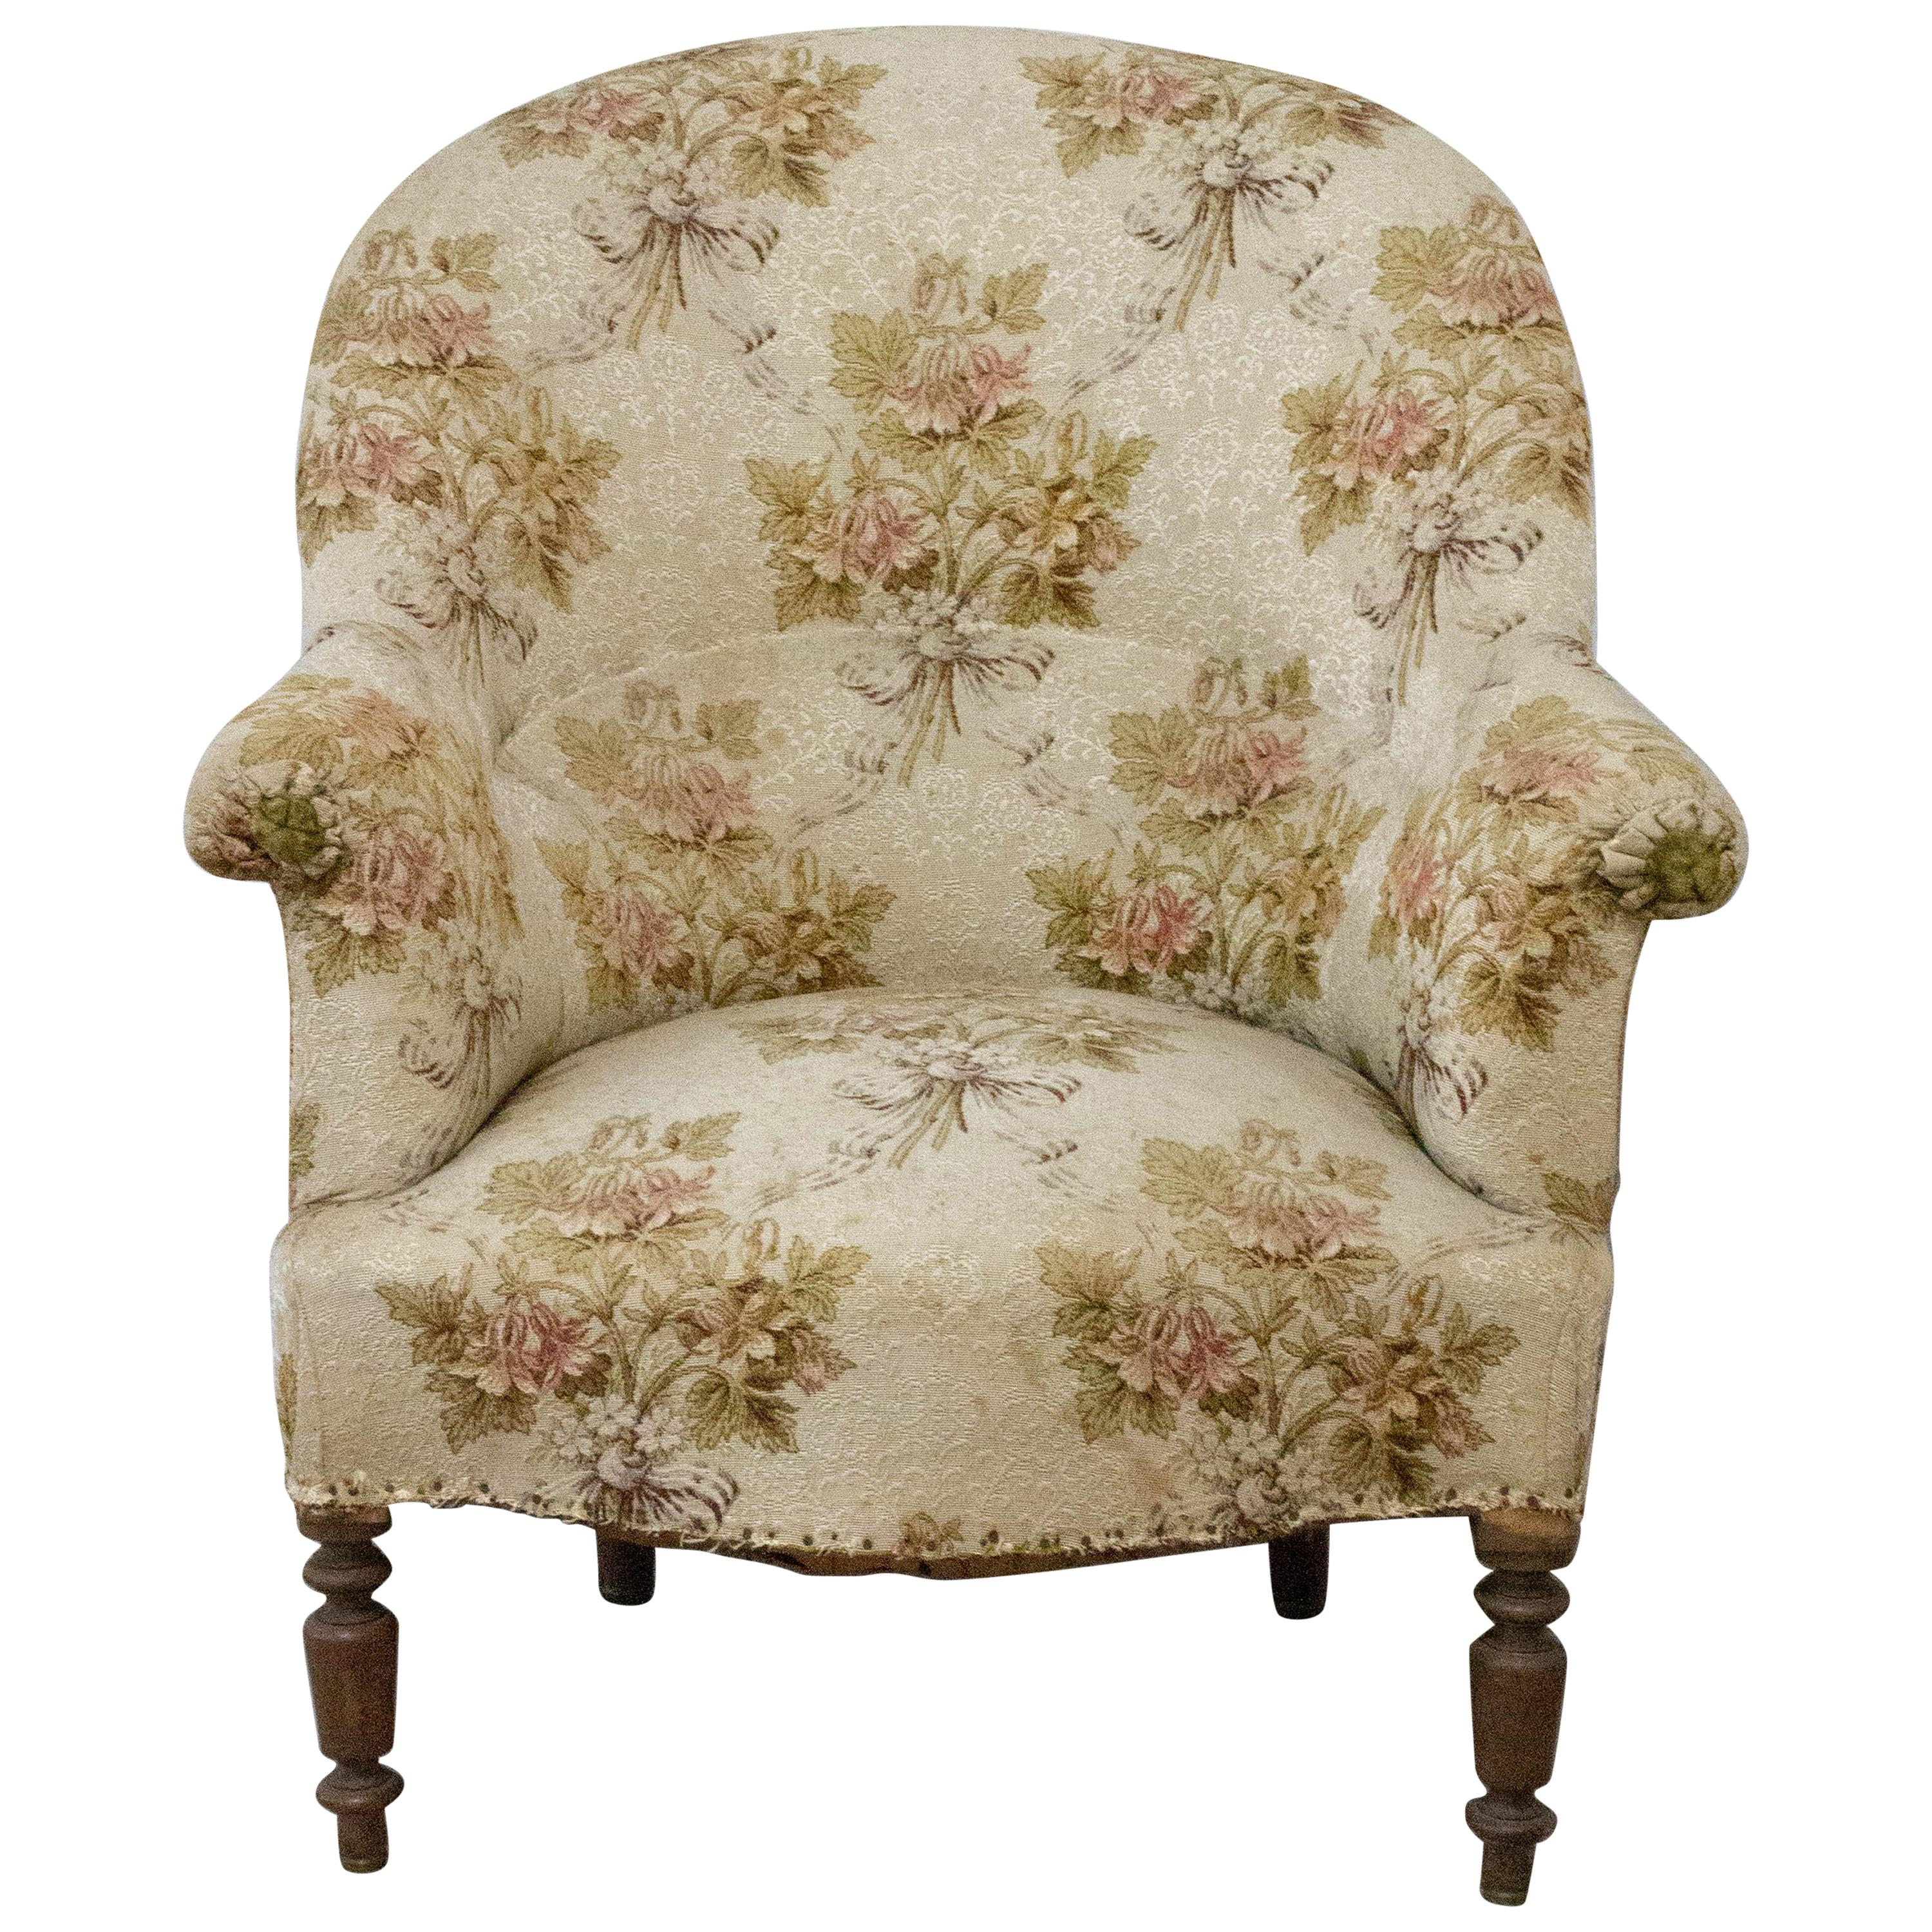 Antique Armchair Fauteuil Napoleon III French 19th Century to Recover